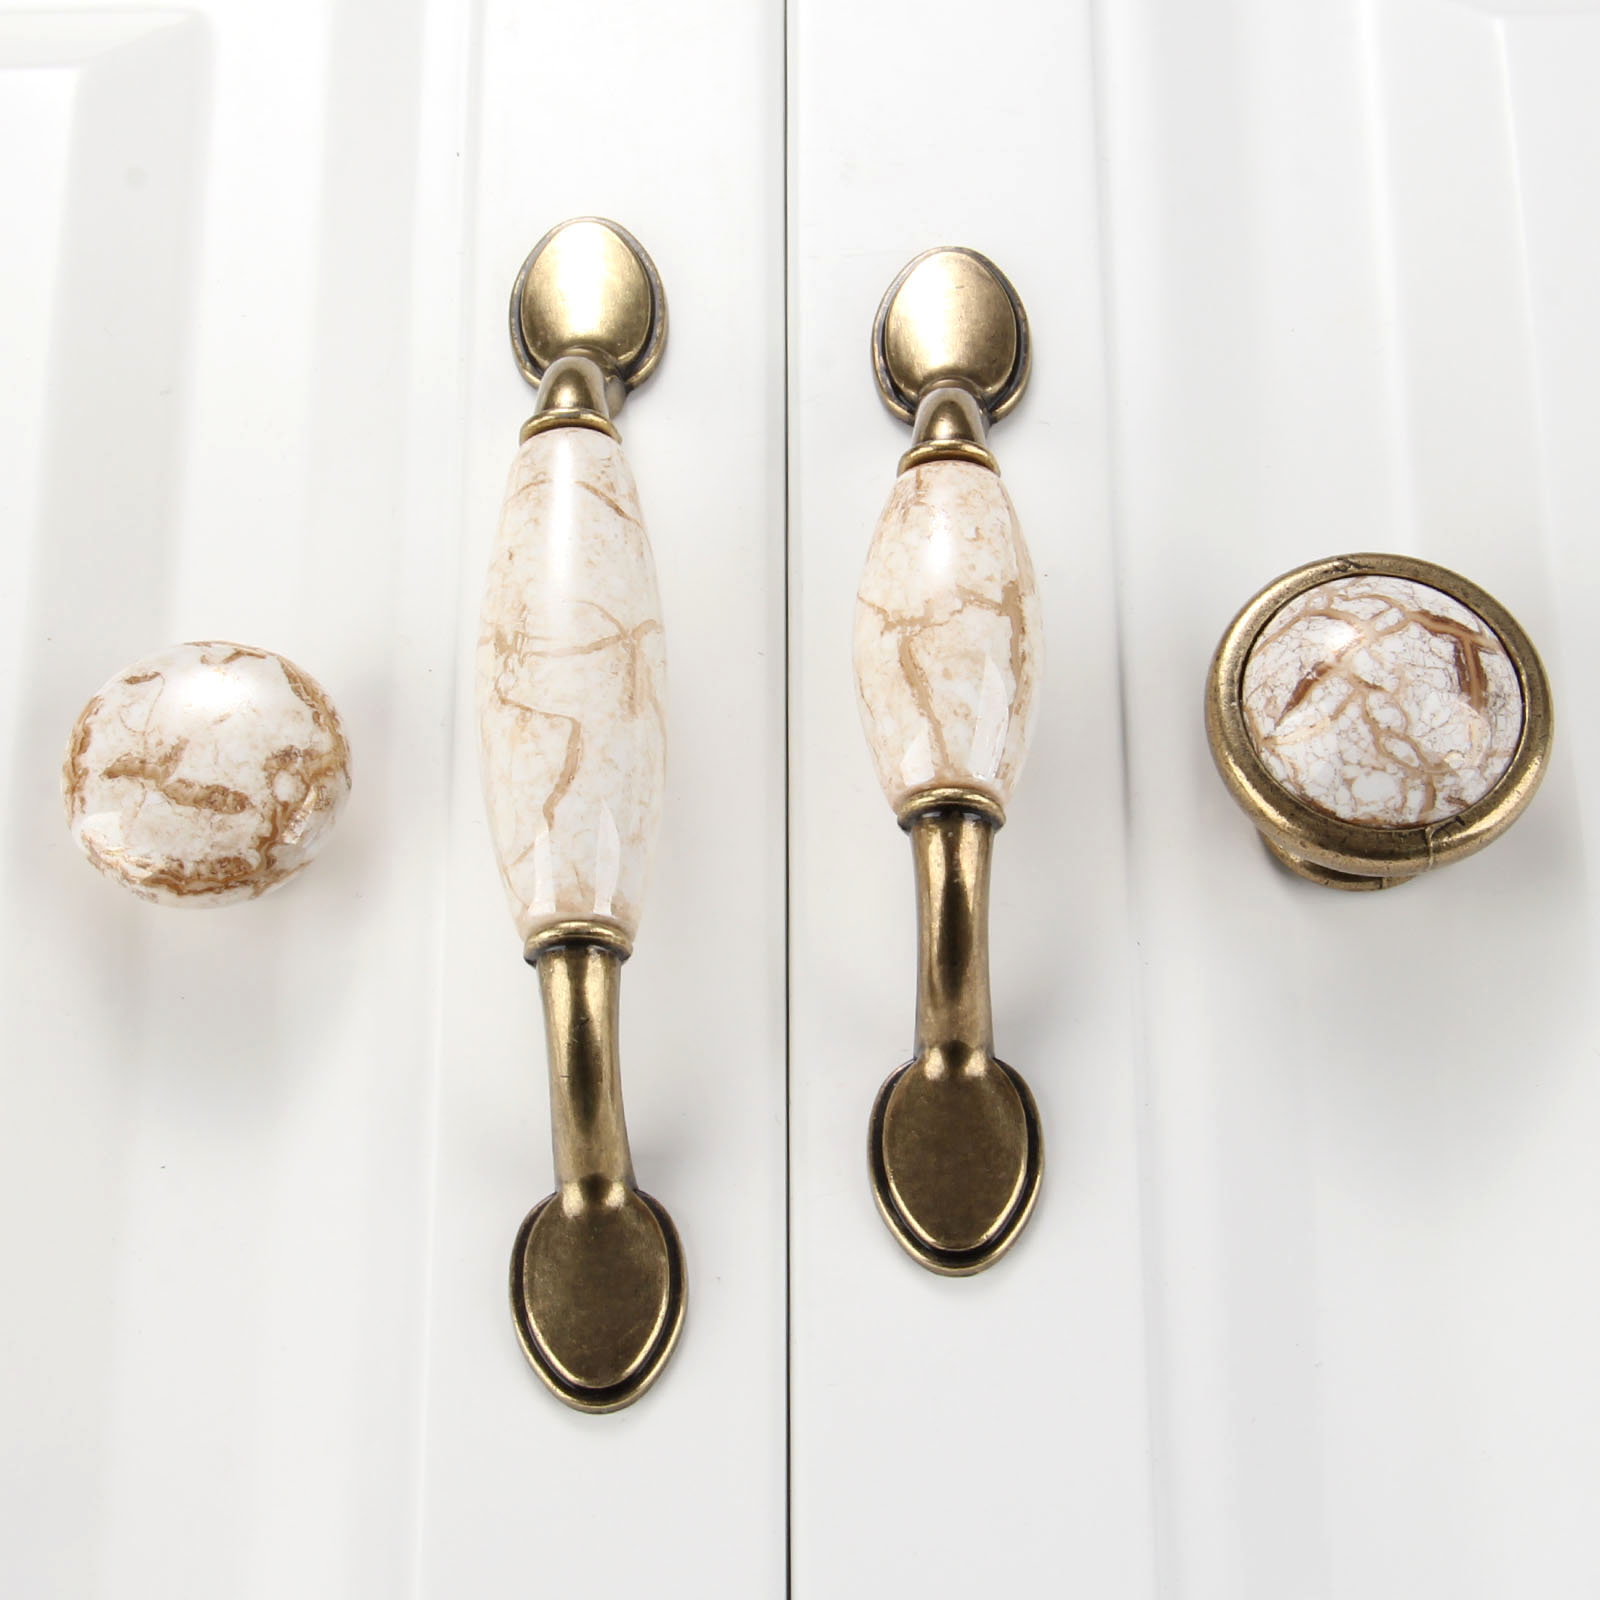 Ceramic Kitchen Cabinet Handles Drawer Pull Knobs Antique: Antique Furniture Handle Ceramic Drawer Door Knob Closet